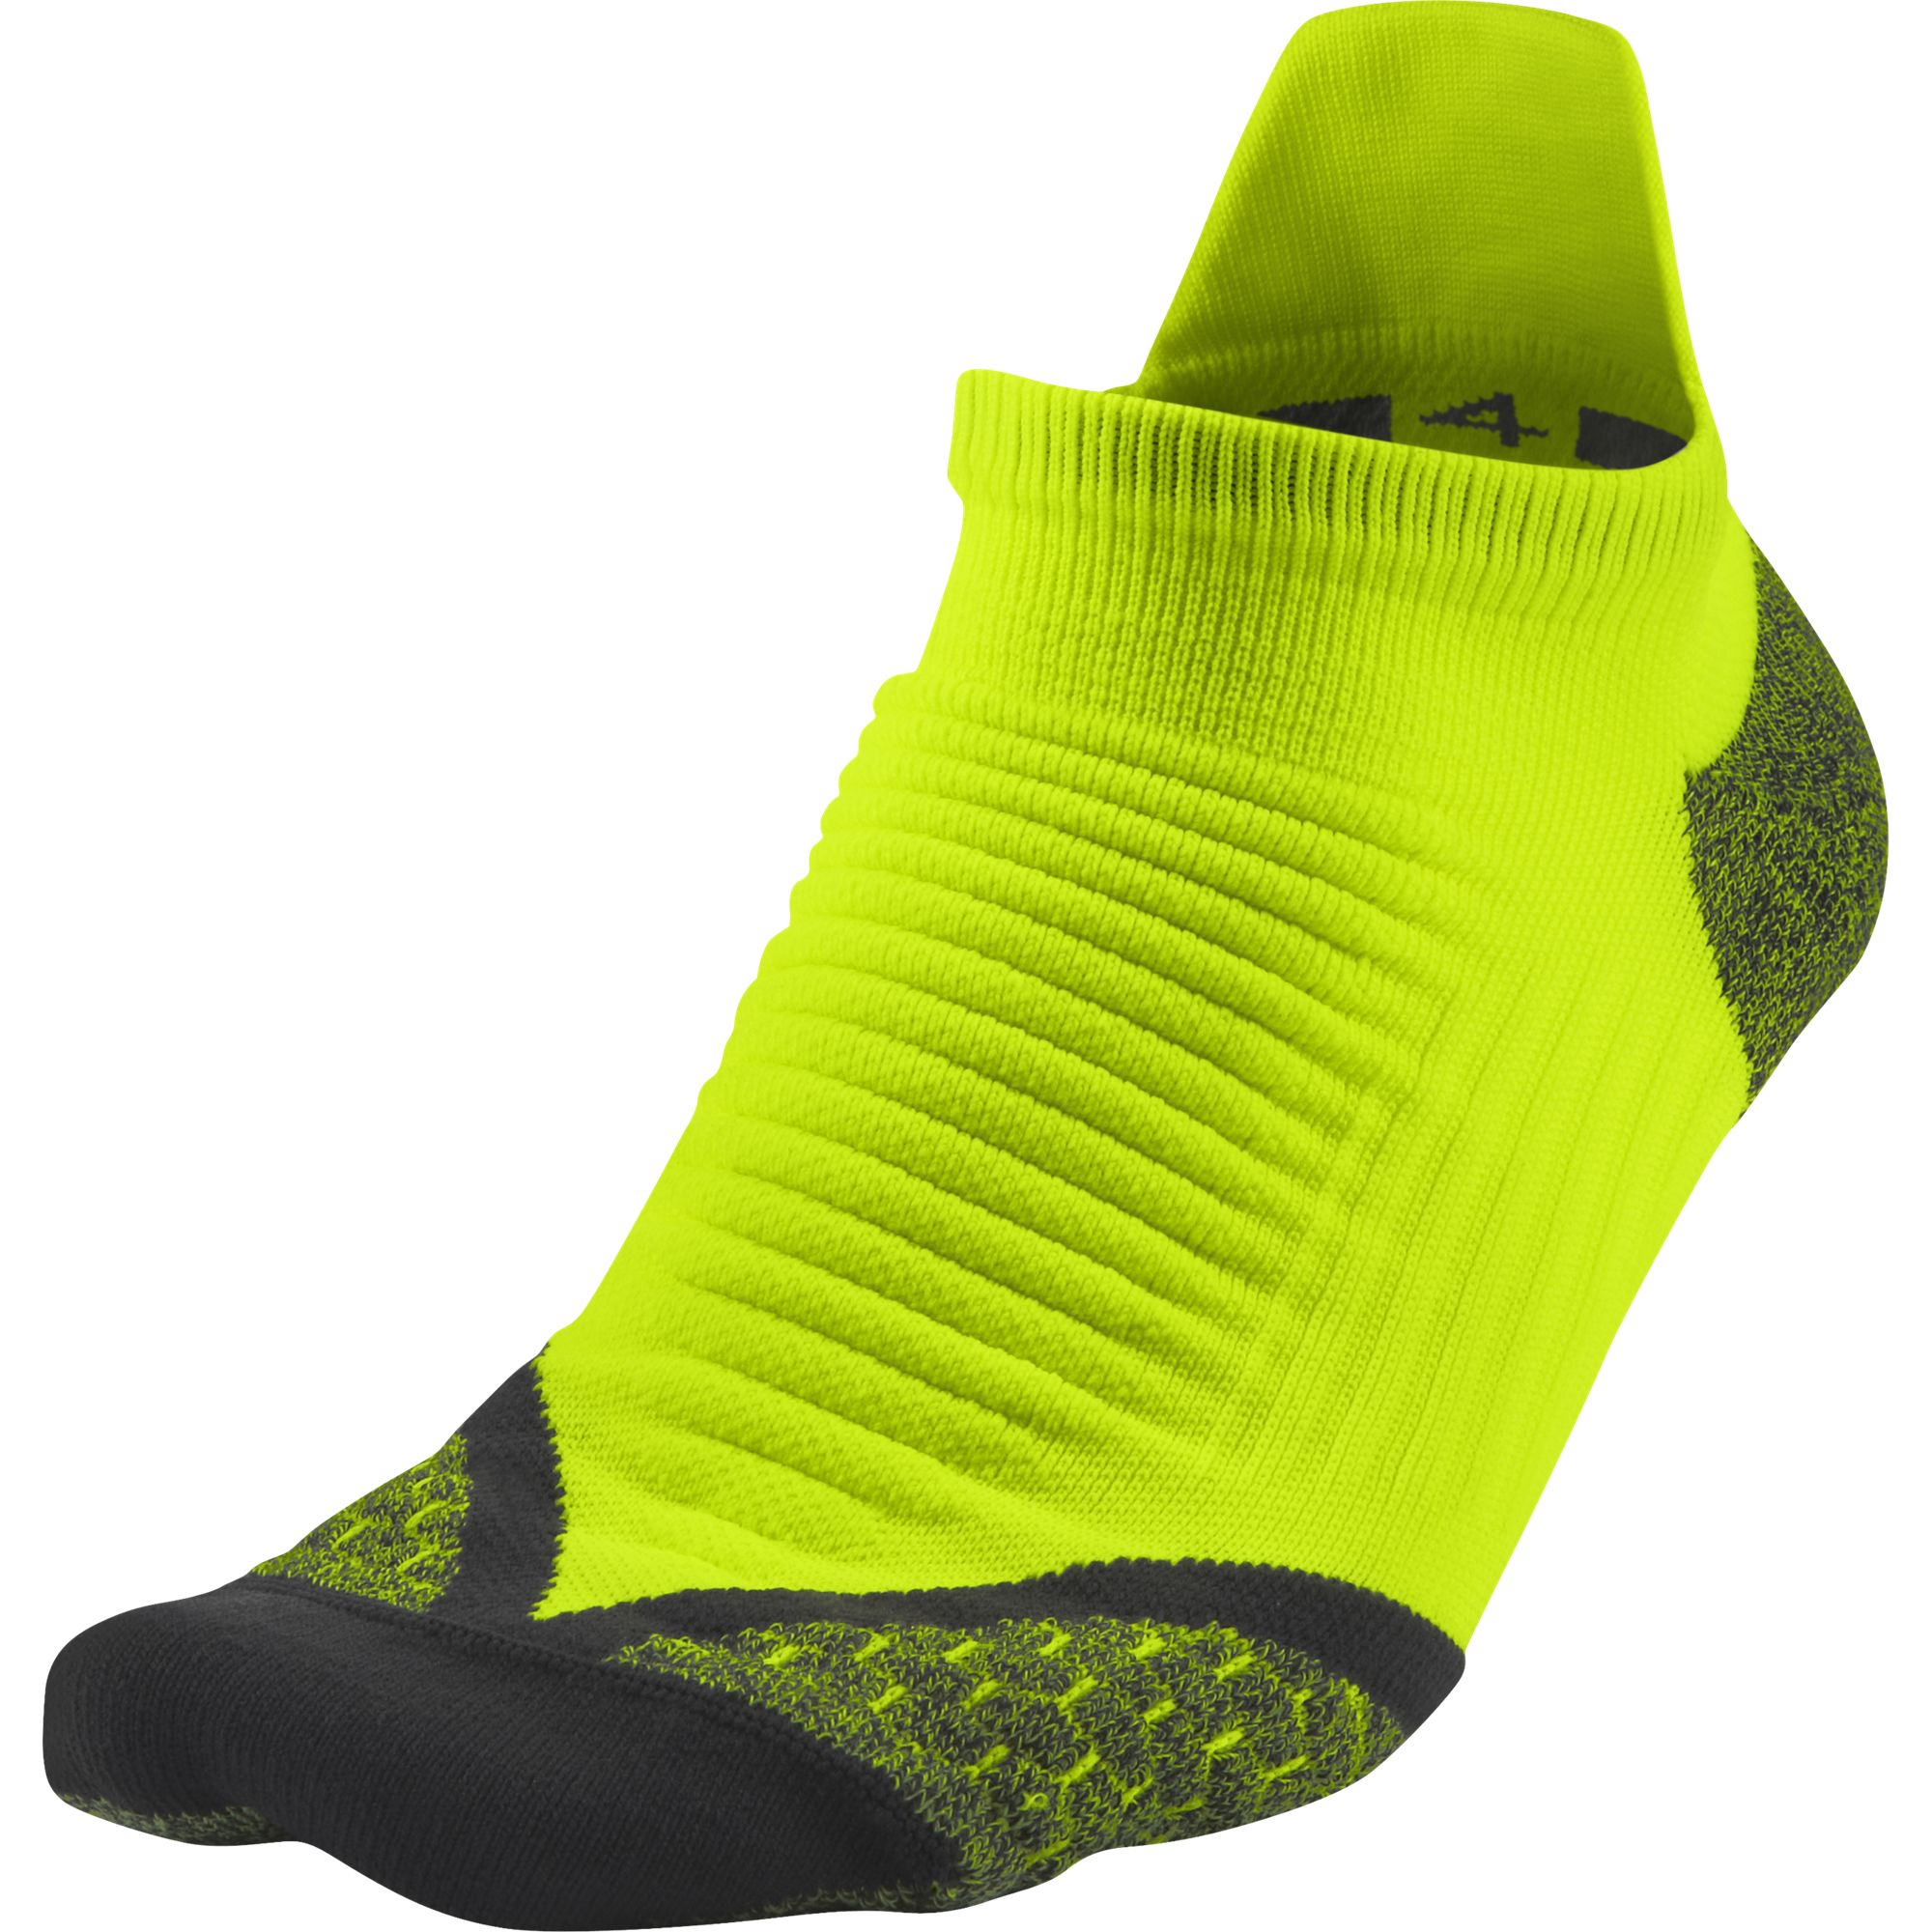 Nike Носки Nike Elite Running Cushion NST, 1 пара чулок д щитков nike guard lock elite sleeve su12 se0173 011 m чёрный